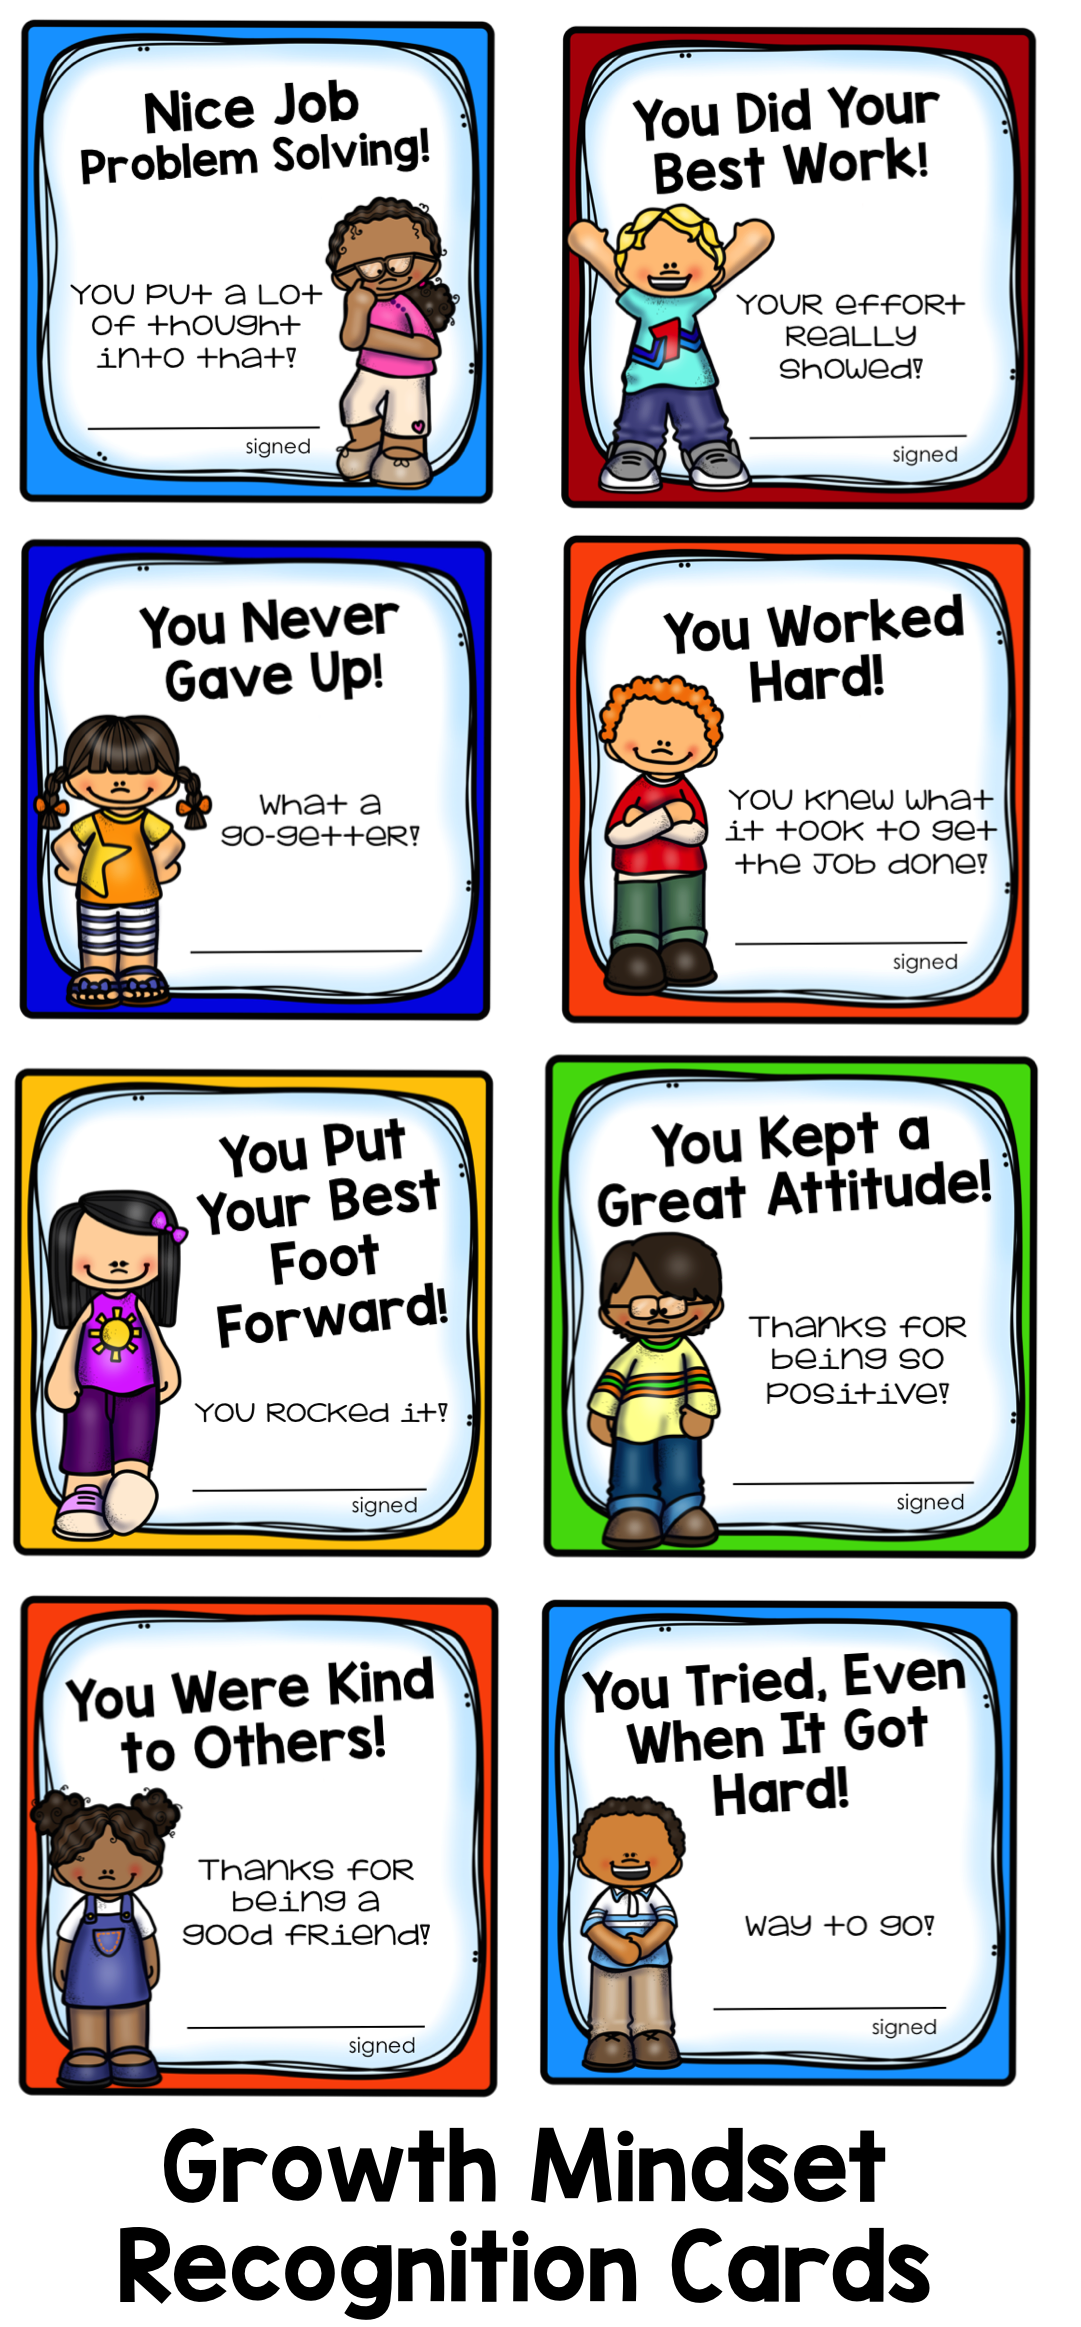 Future clipart university life. Growth mindset student recognition